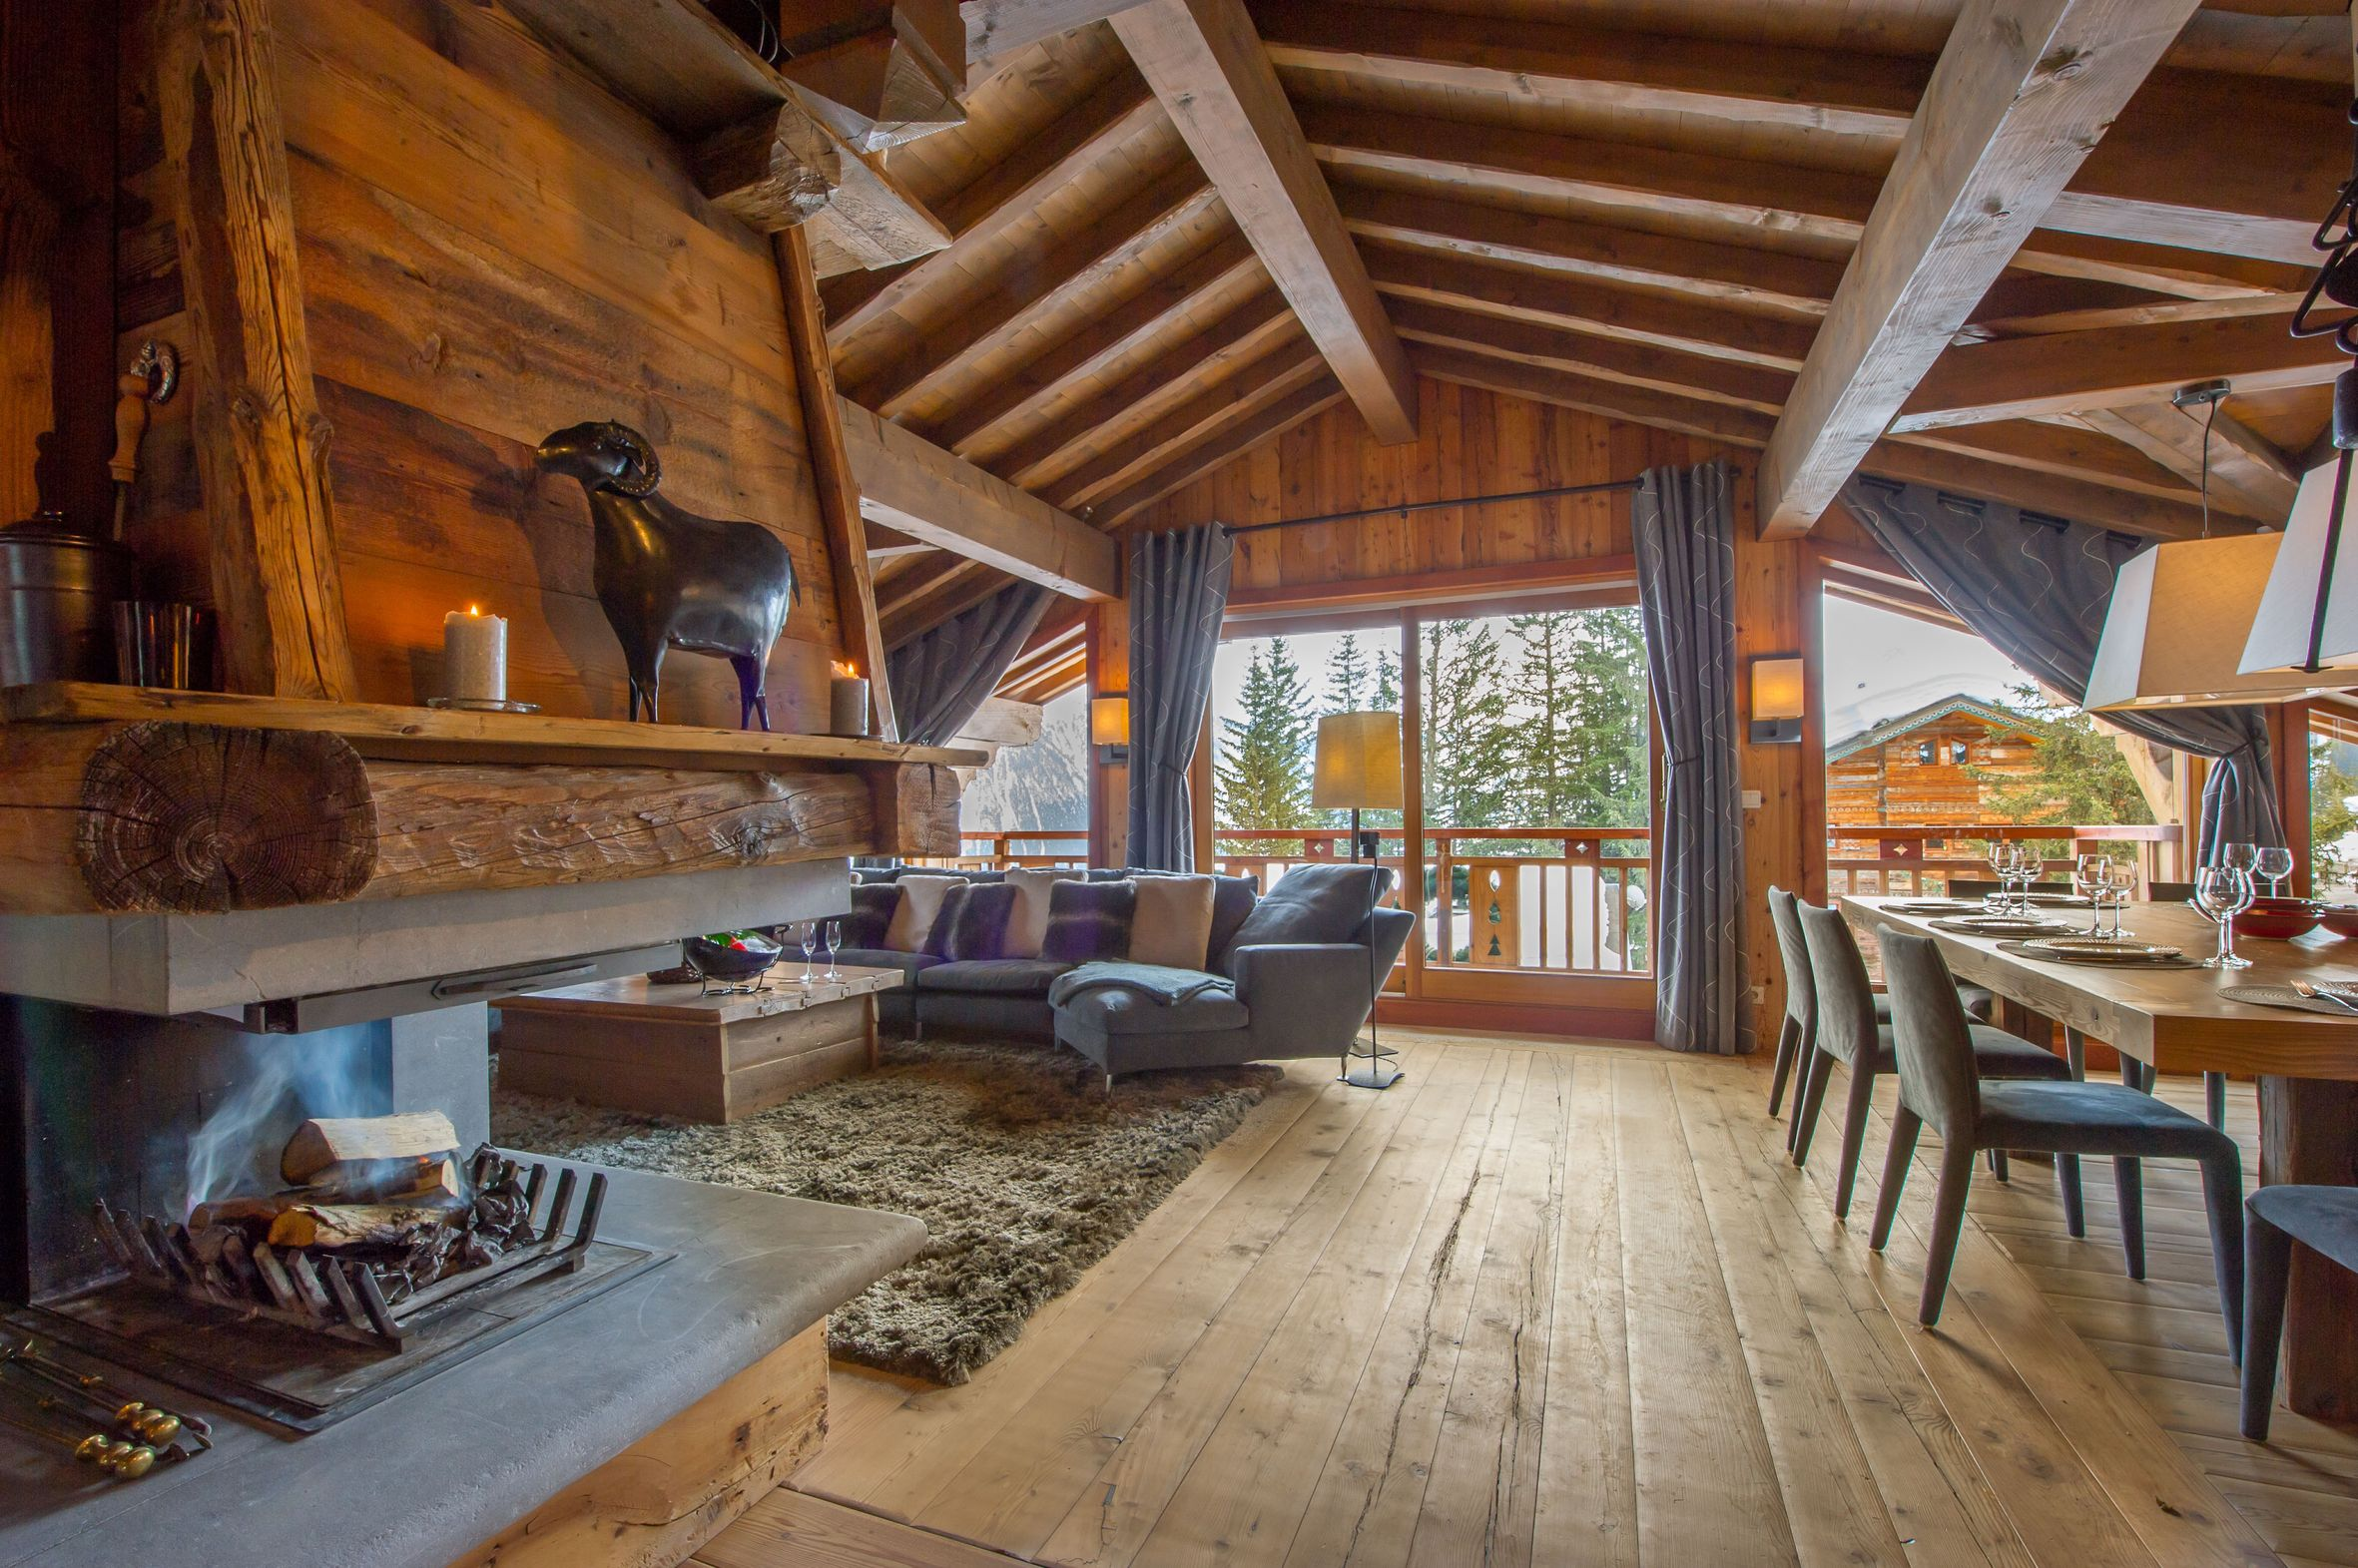 Location chalet courchevel 1850 12 personnes monic1204 for Progetti architettonici per chalet